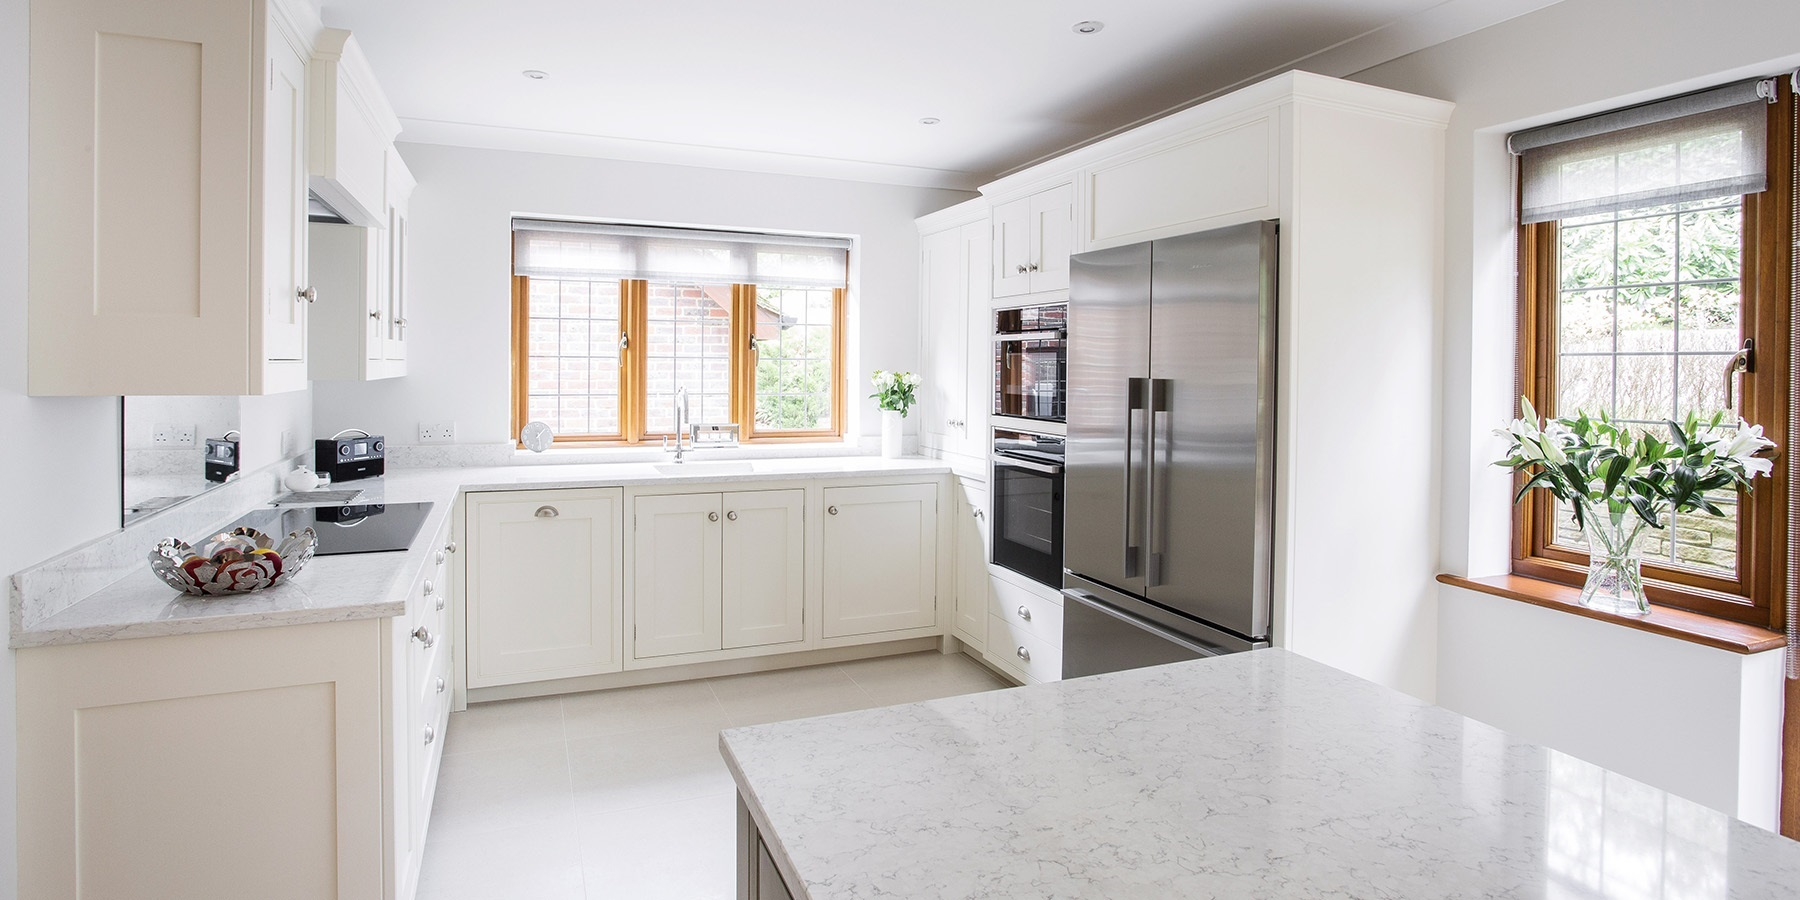 Contemporary White Shaker Kitchen - Contemporary handmade Wellsdown cabinetry with large silver fridge and appliances.